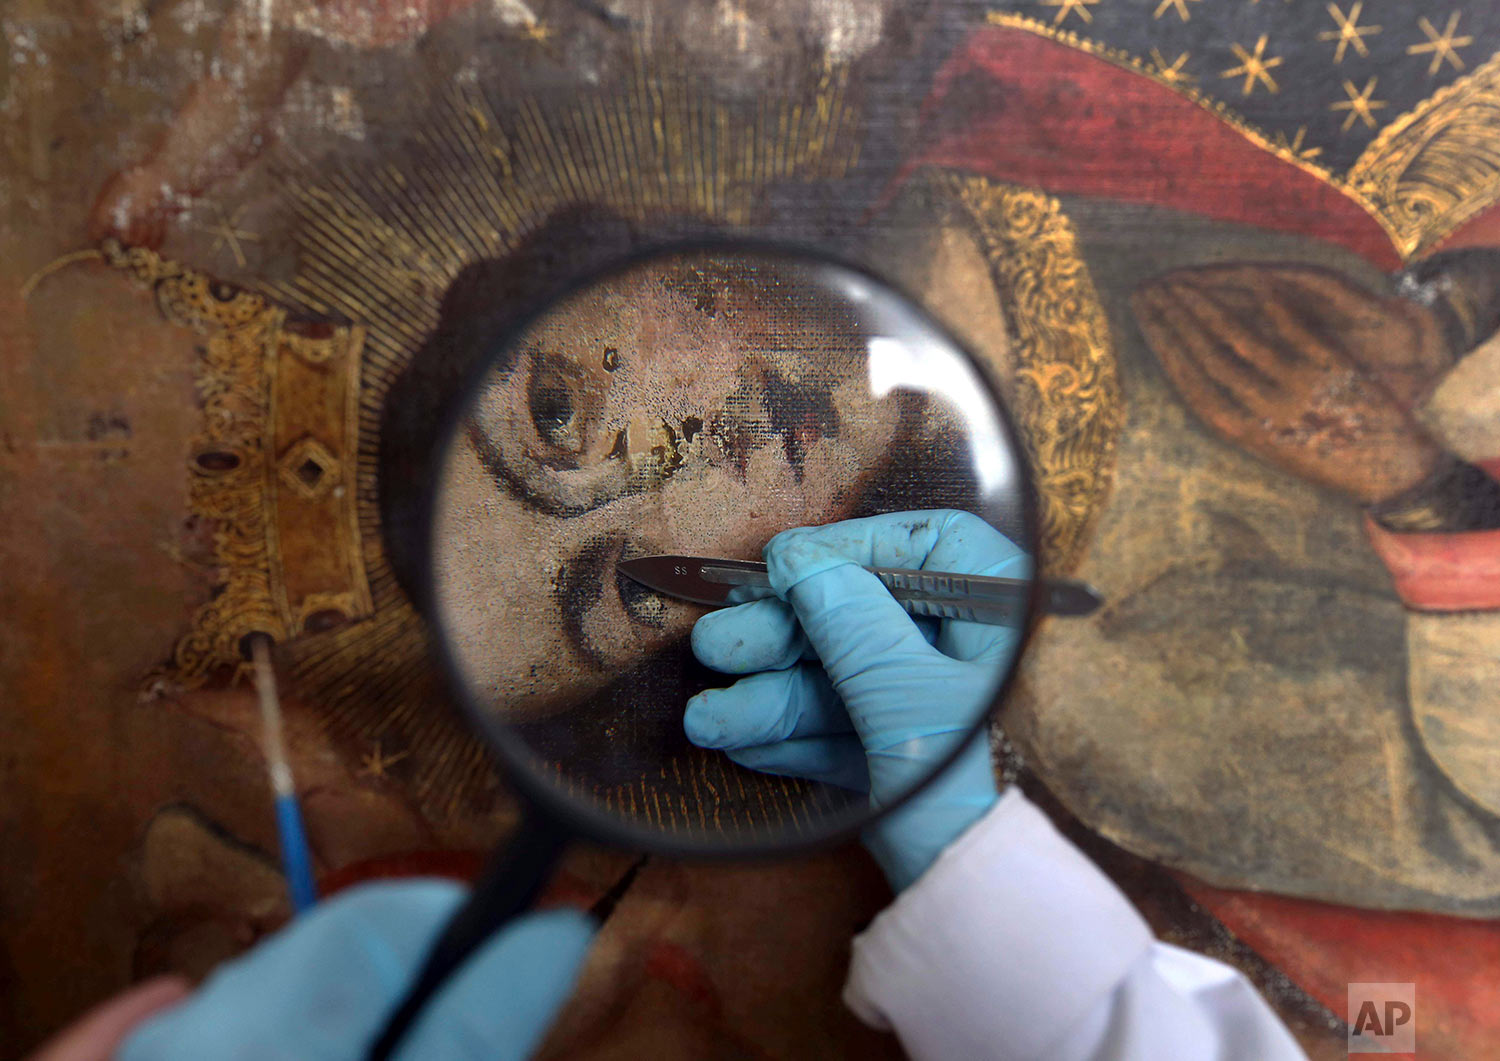 In this March 1, 2018 photo published in July, an art restorer works on a 17th century painting in a studio at the Ministry of Culture Restoration Center in Cuzco, Peru. The center receives calls for help from small churches in remote Andean villages that have existed for centuries, and many of the paintings have endured punishing rain, sun, mold, nibbling moths and even flawed repairs by untrained hands. (AP Photo/Martin Mejia)